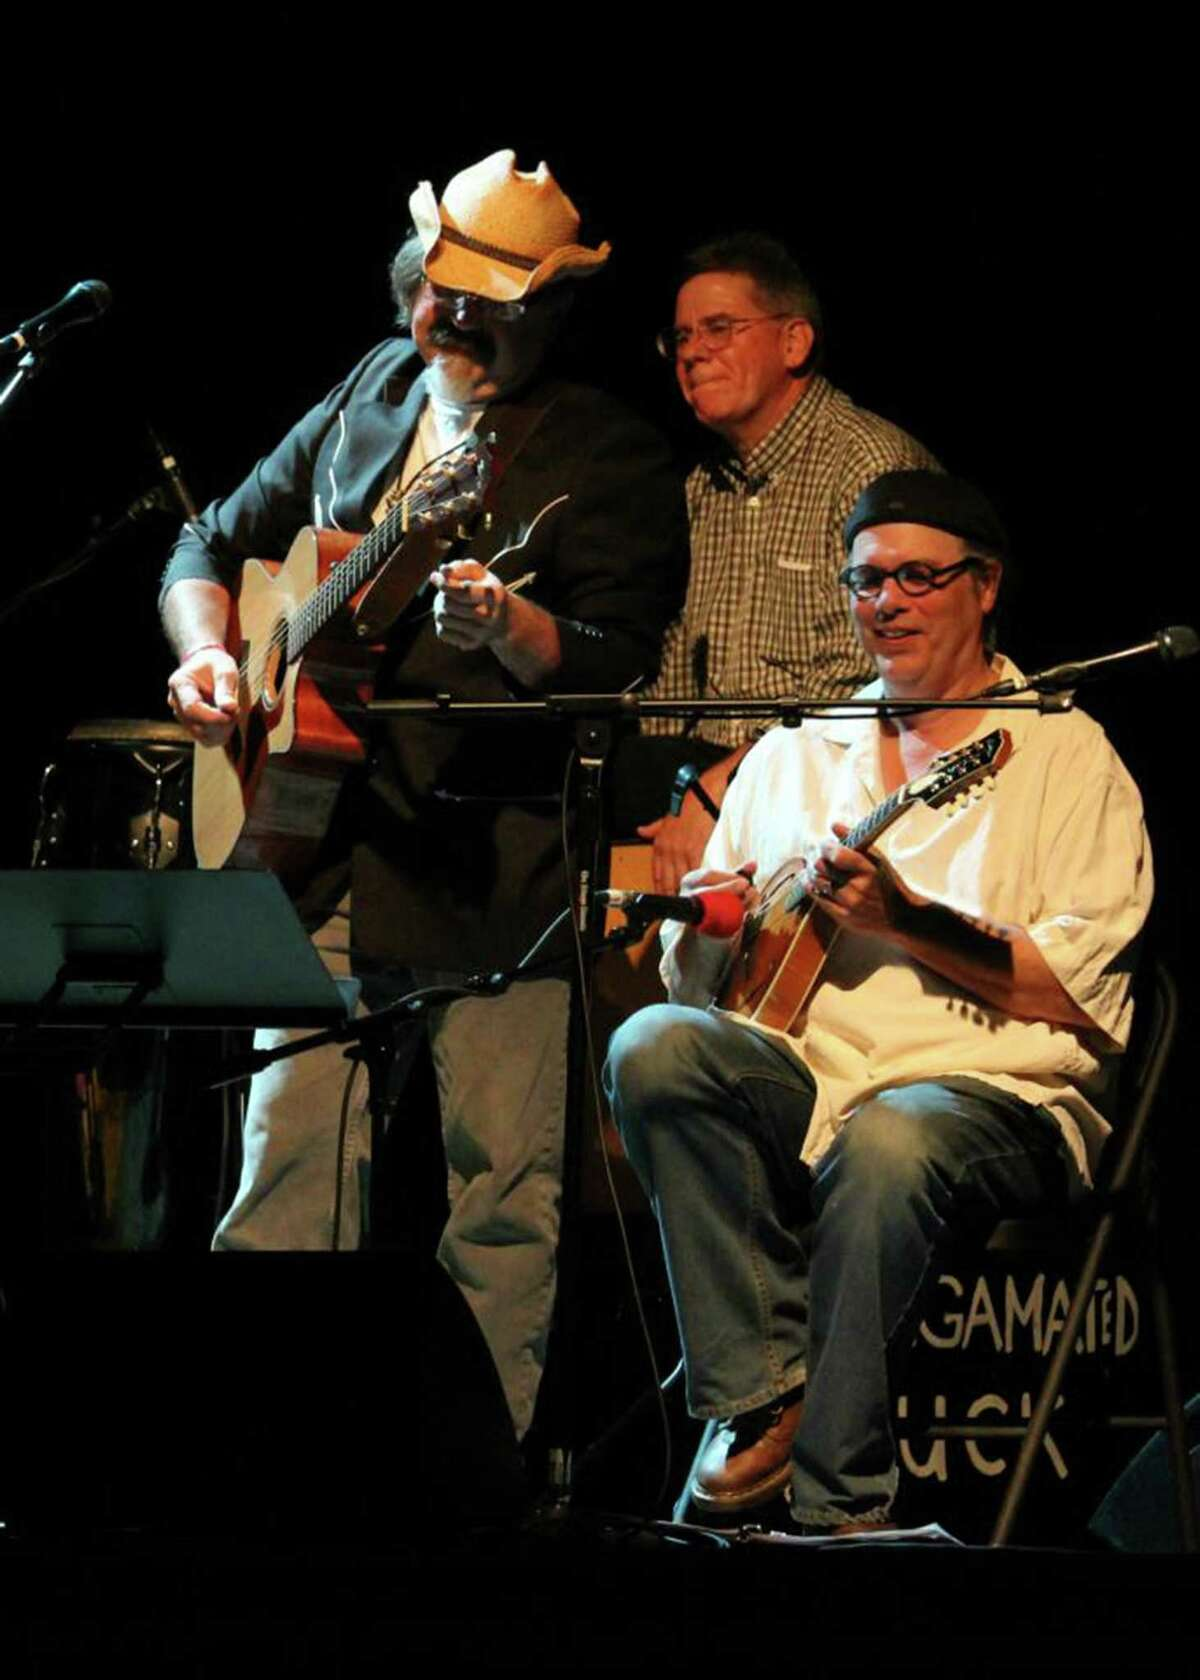 J. Rolston Amalgamated Muck joins the With a Little Help From My Friends merriment Friday at The Kate in Old Saybrook.